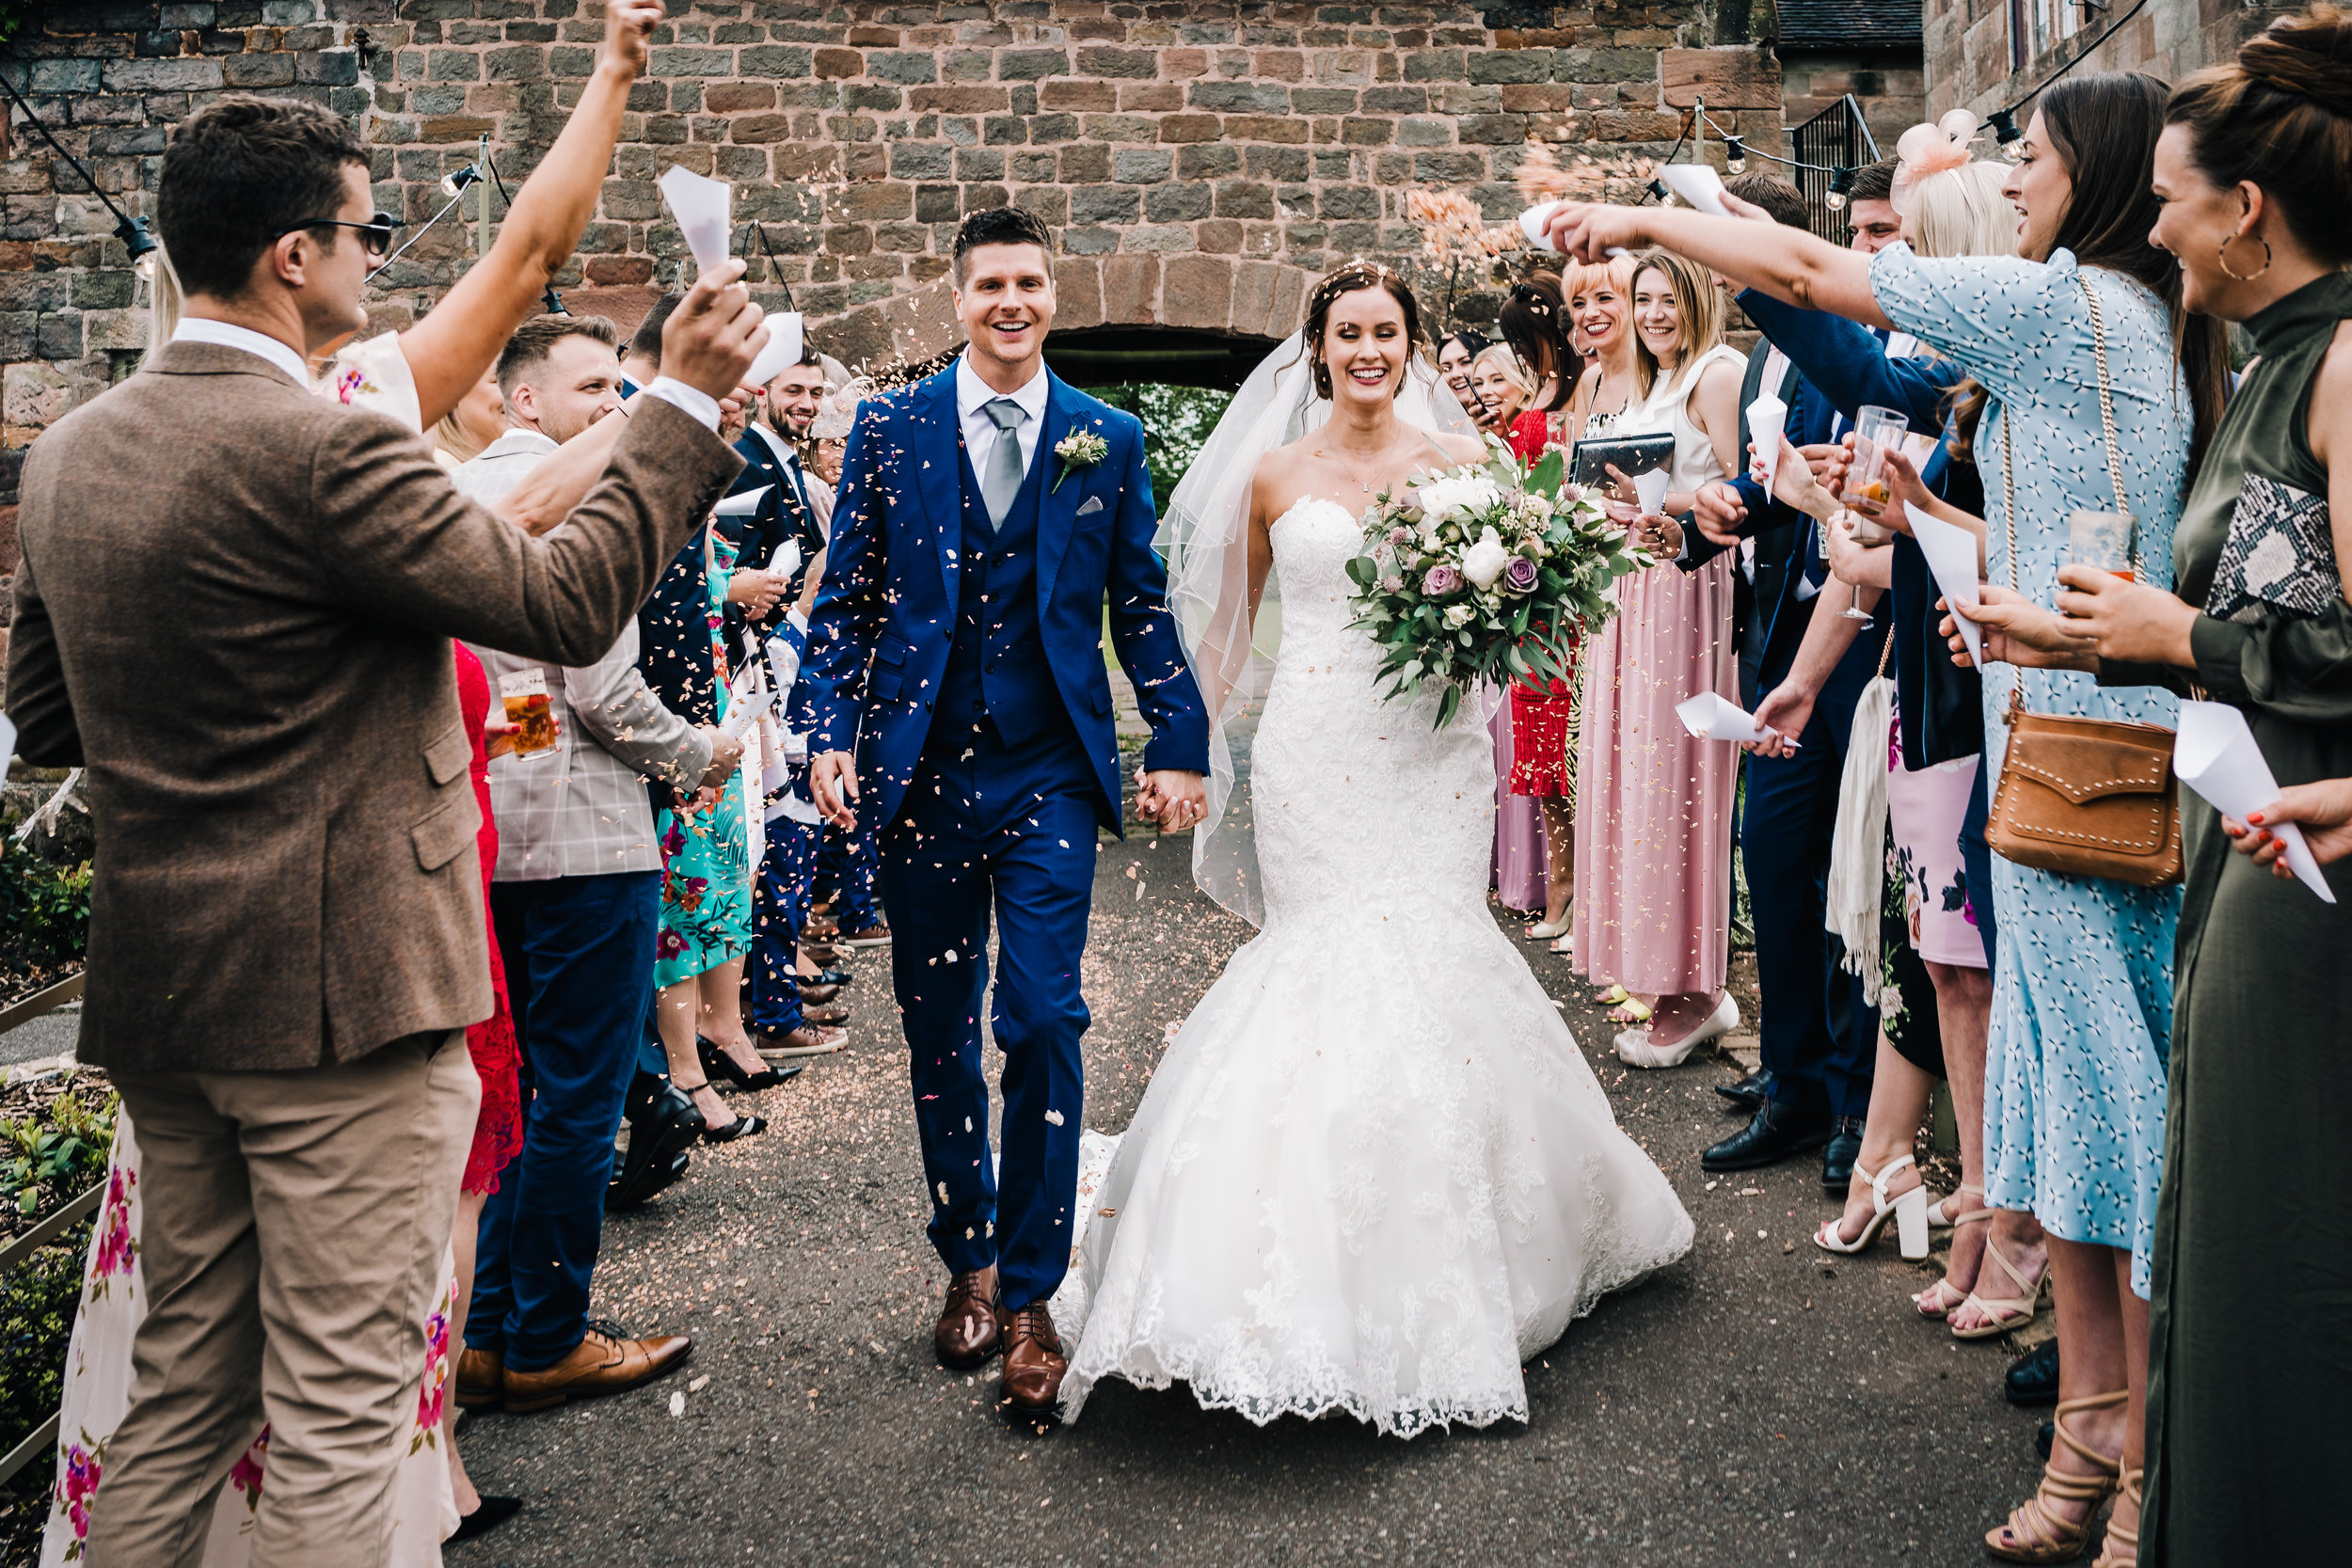 WEDDING COUPLE WALKING TOGETHER THROUGH CONFETTI AT THE ASHES